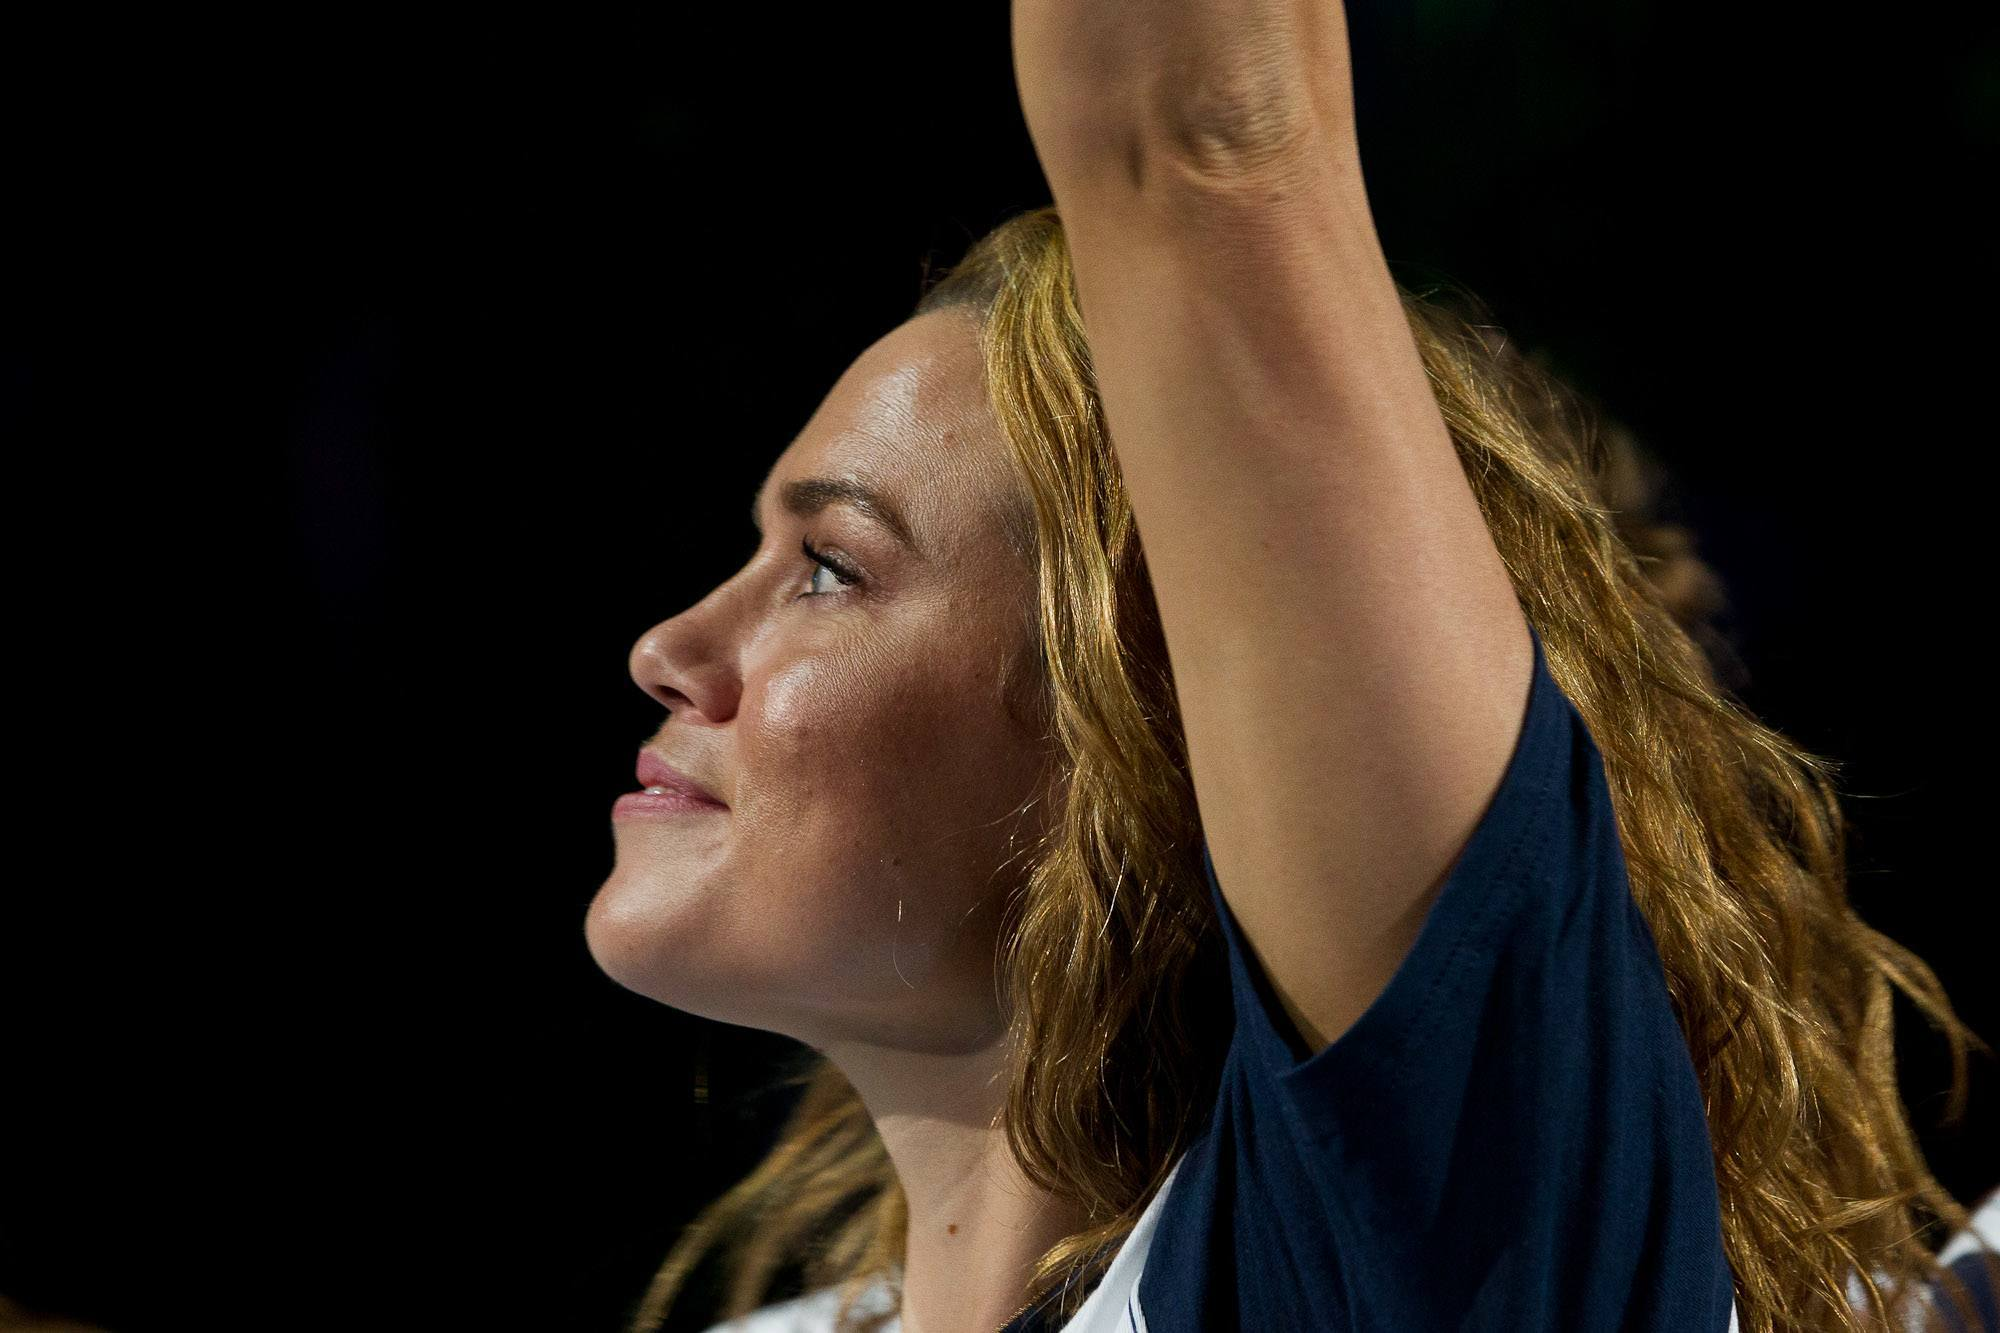 12-Time Olympic Medalist Natalie Coughlin Gives Birth to First Child